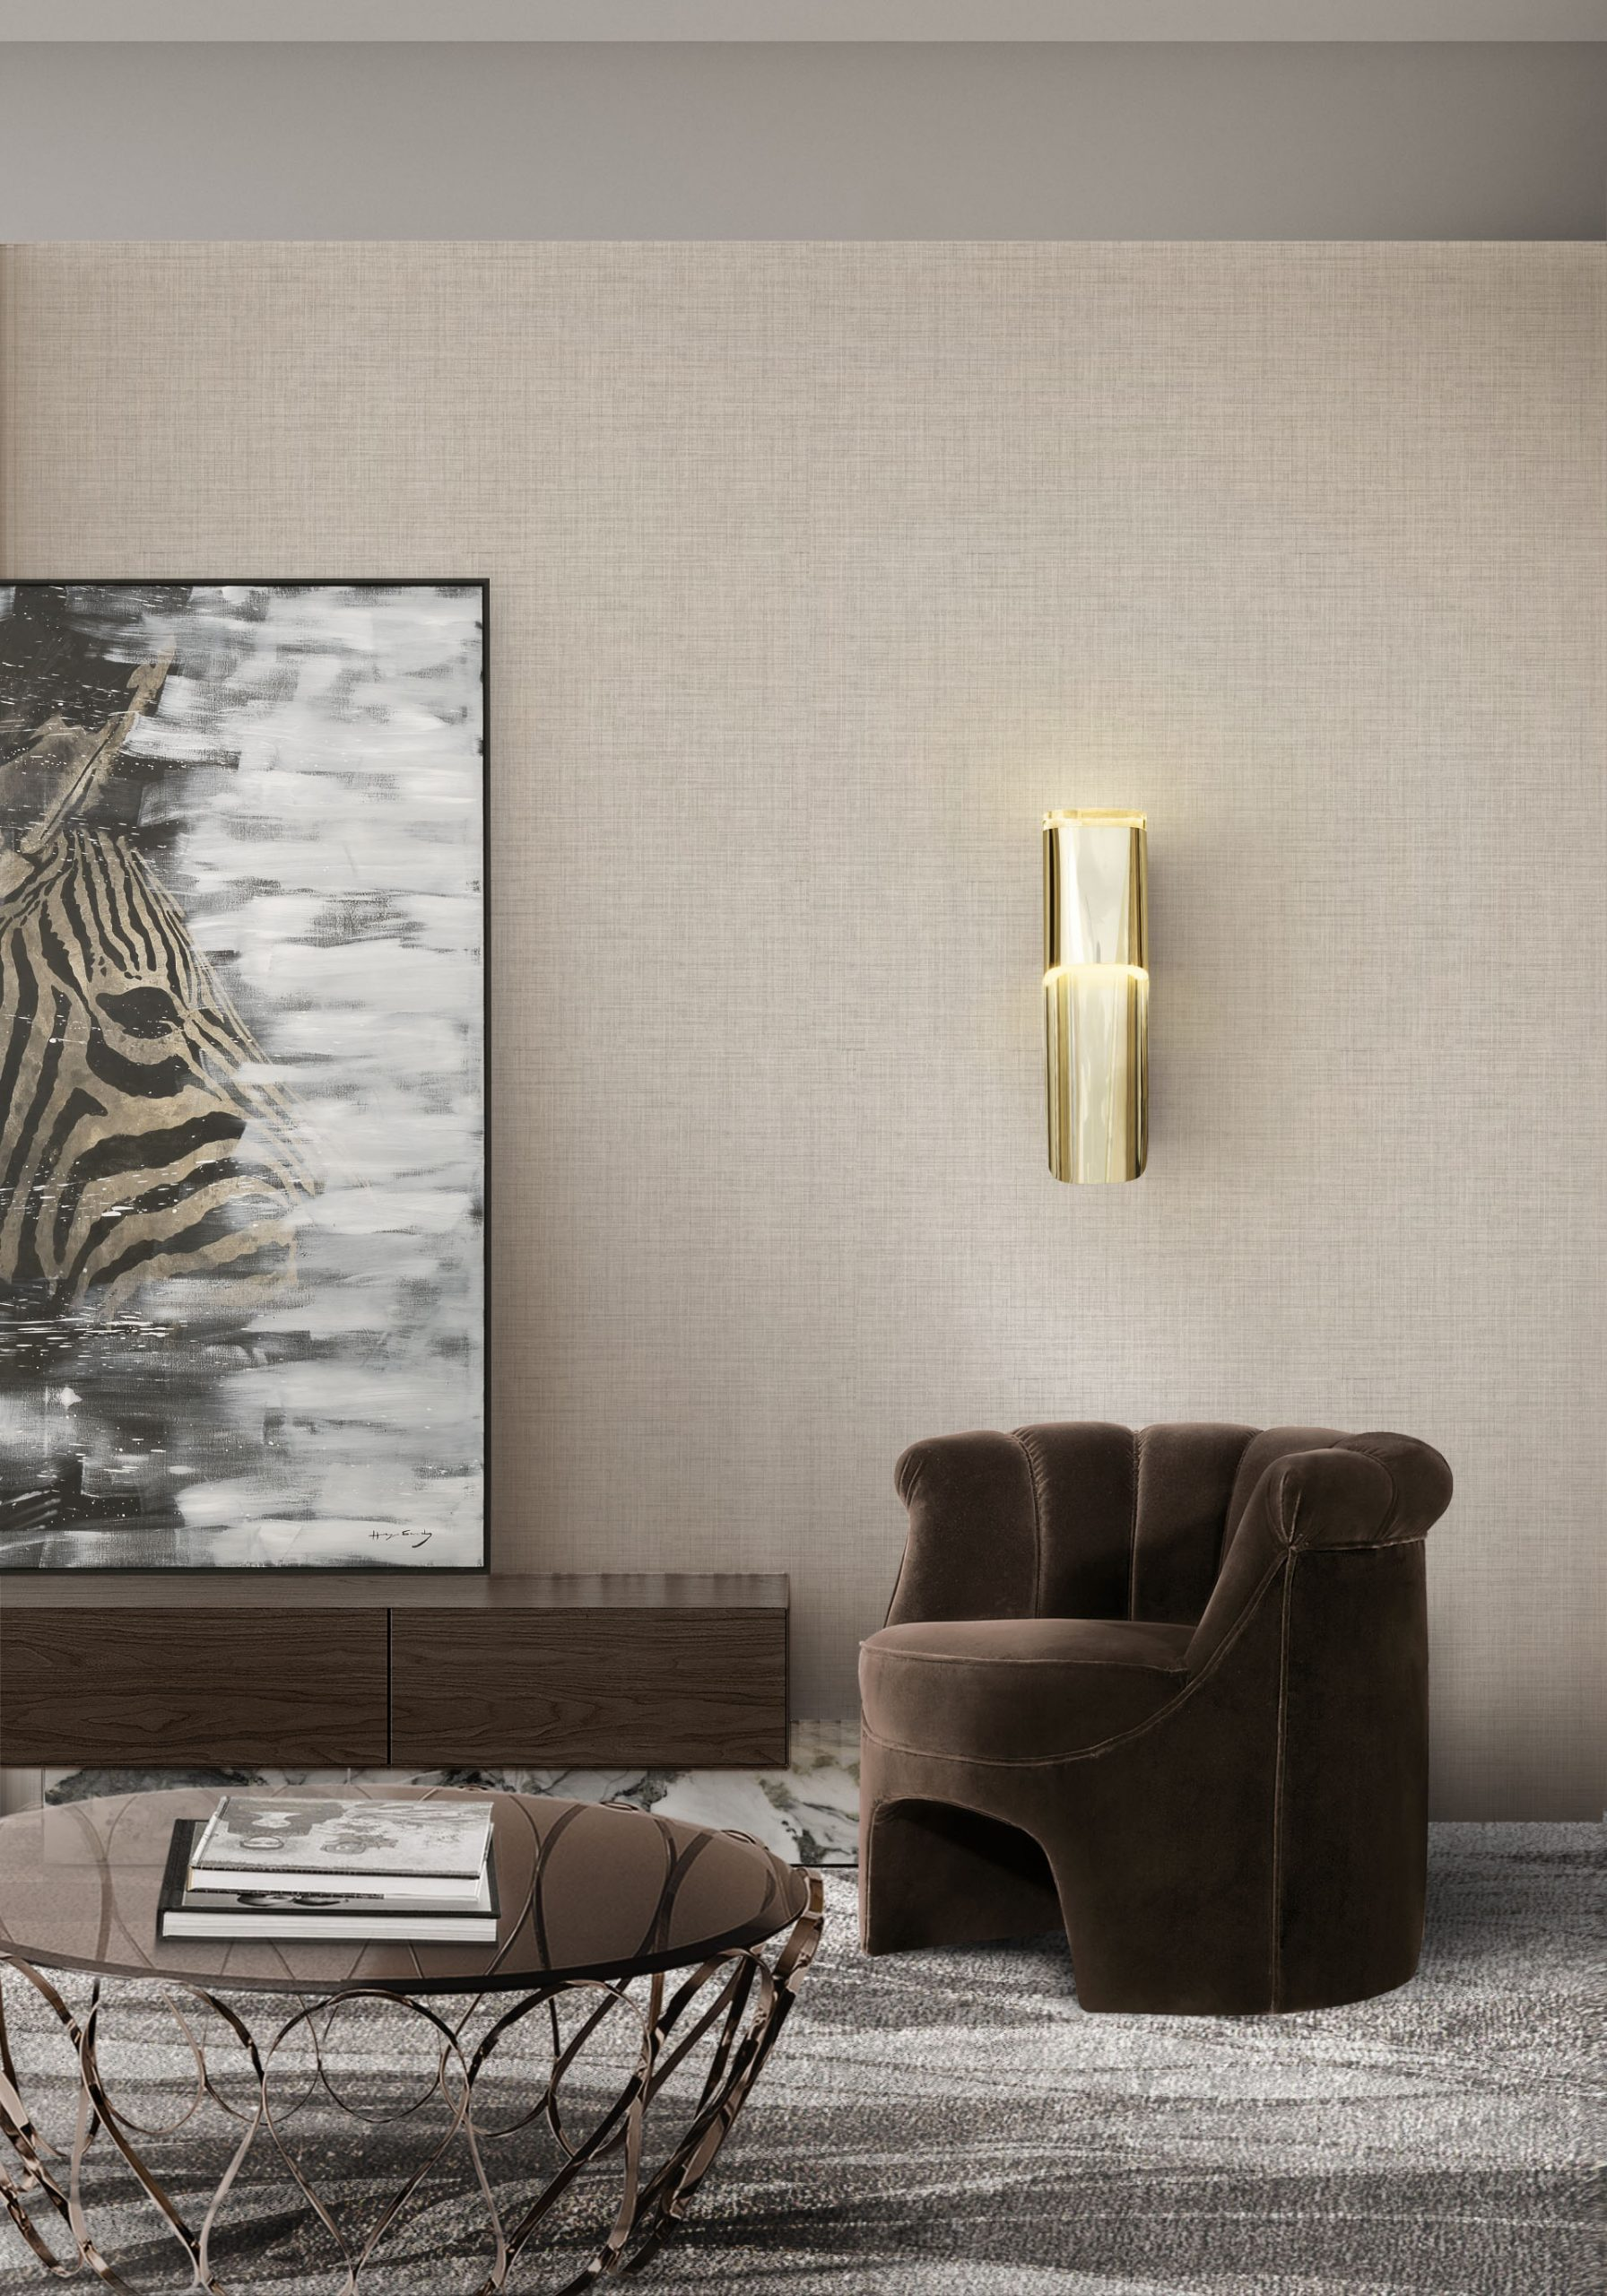 Earth tones: Renew Your Home With These Earth Tone Modern Chairs earth tones Earth tones: Renew Your Home With These Earth Tone Modern Chairs Earth tones Renew Your Home With These Earth Tone Modern Chairs 2 scaled